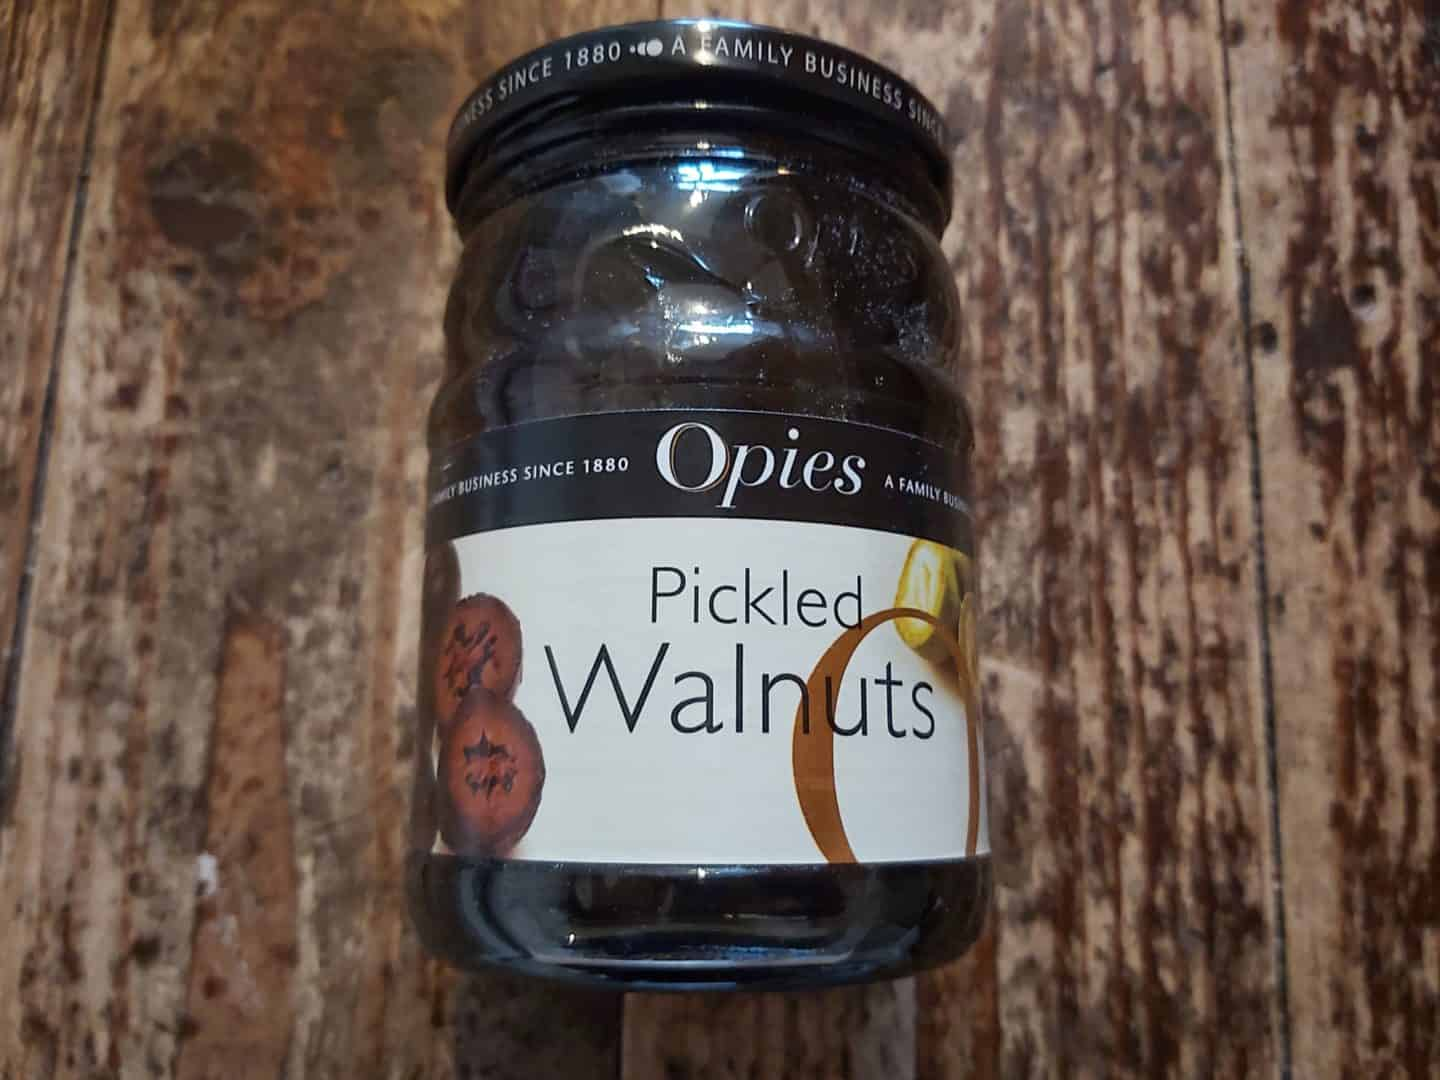 Jar of Opies Pickled Walnuts